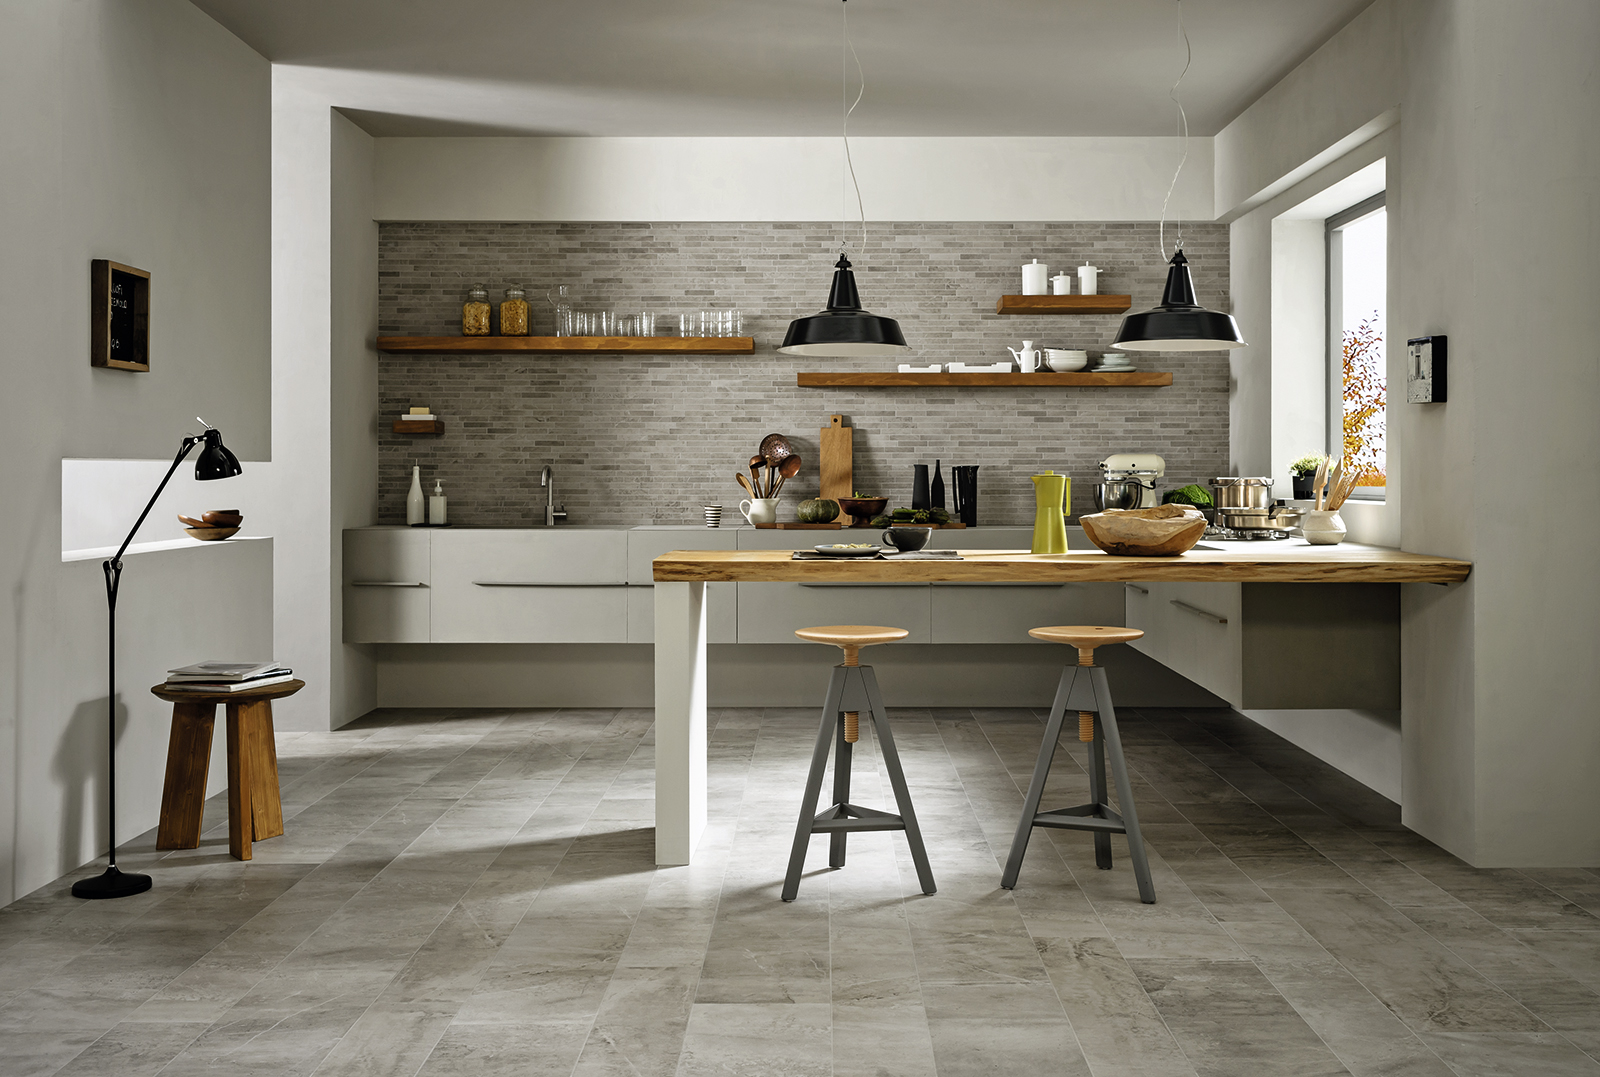 Blend carrelages satin s effet pierre marazzi for Piastrelle parete cucina